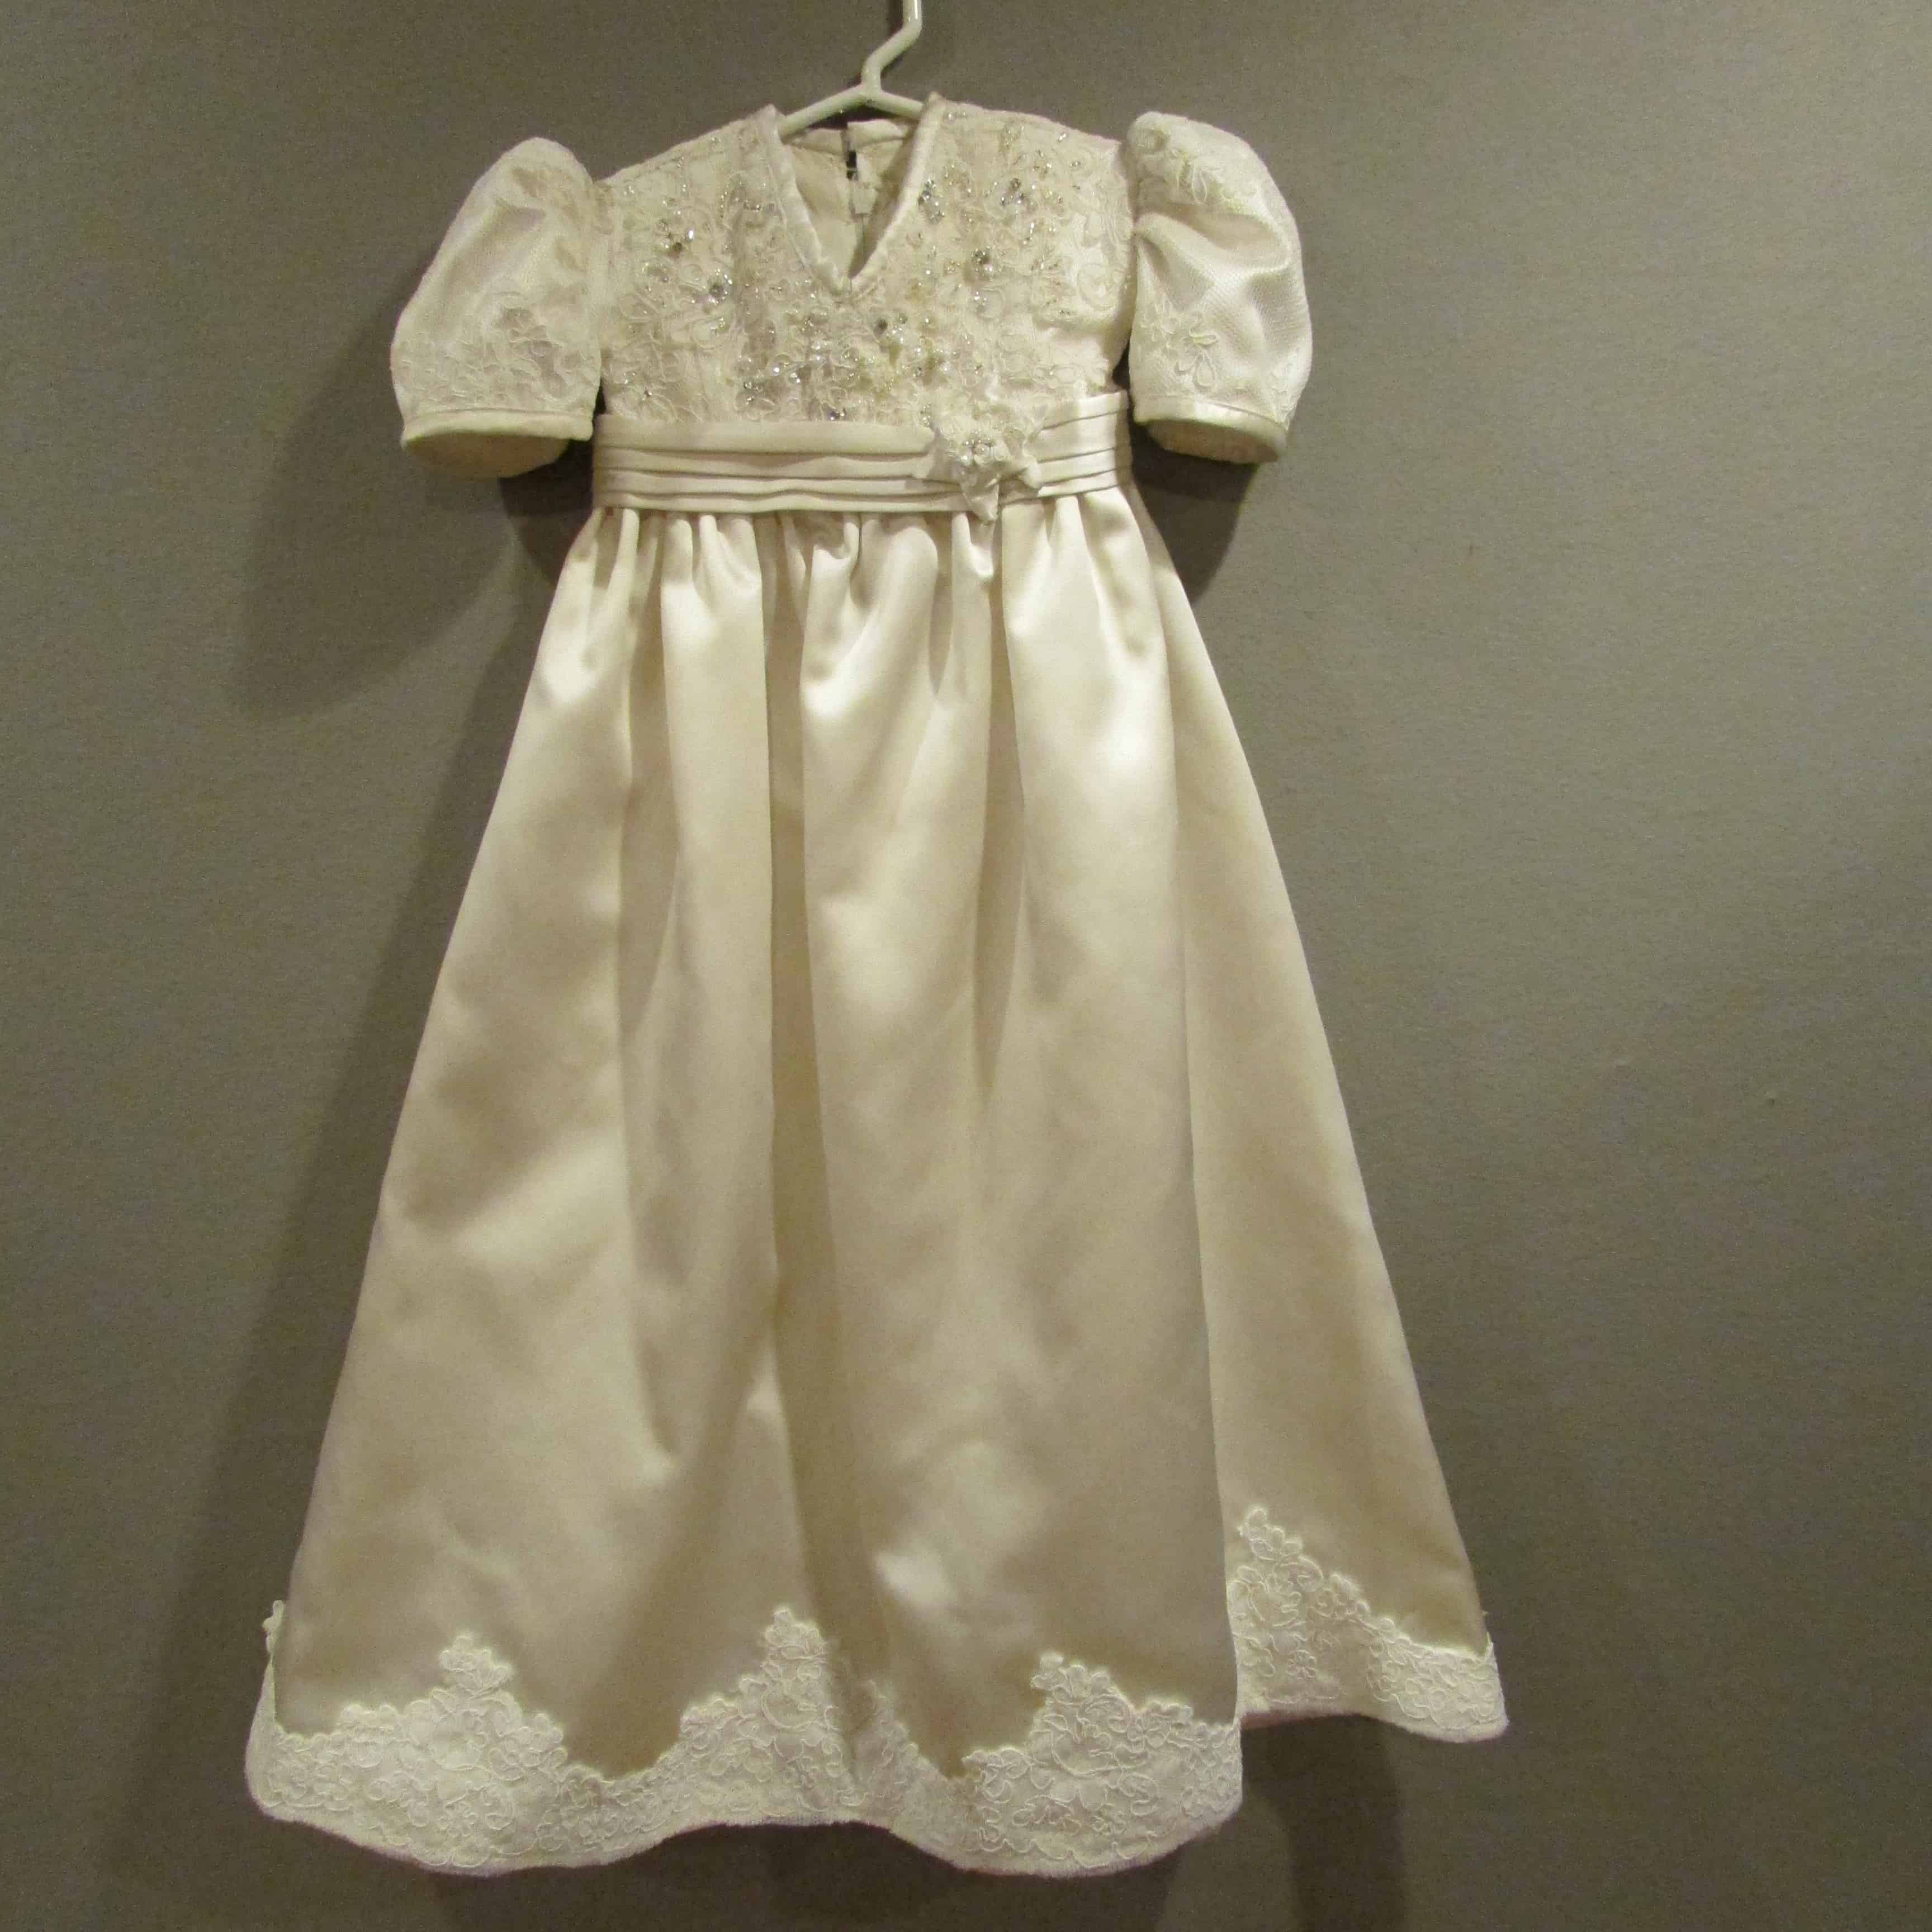 Baptismal Gown 9.14